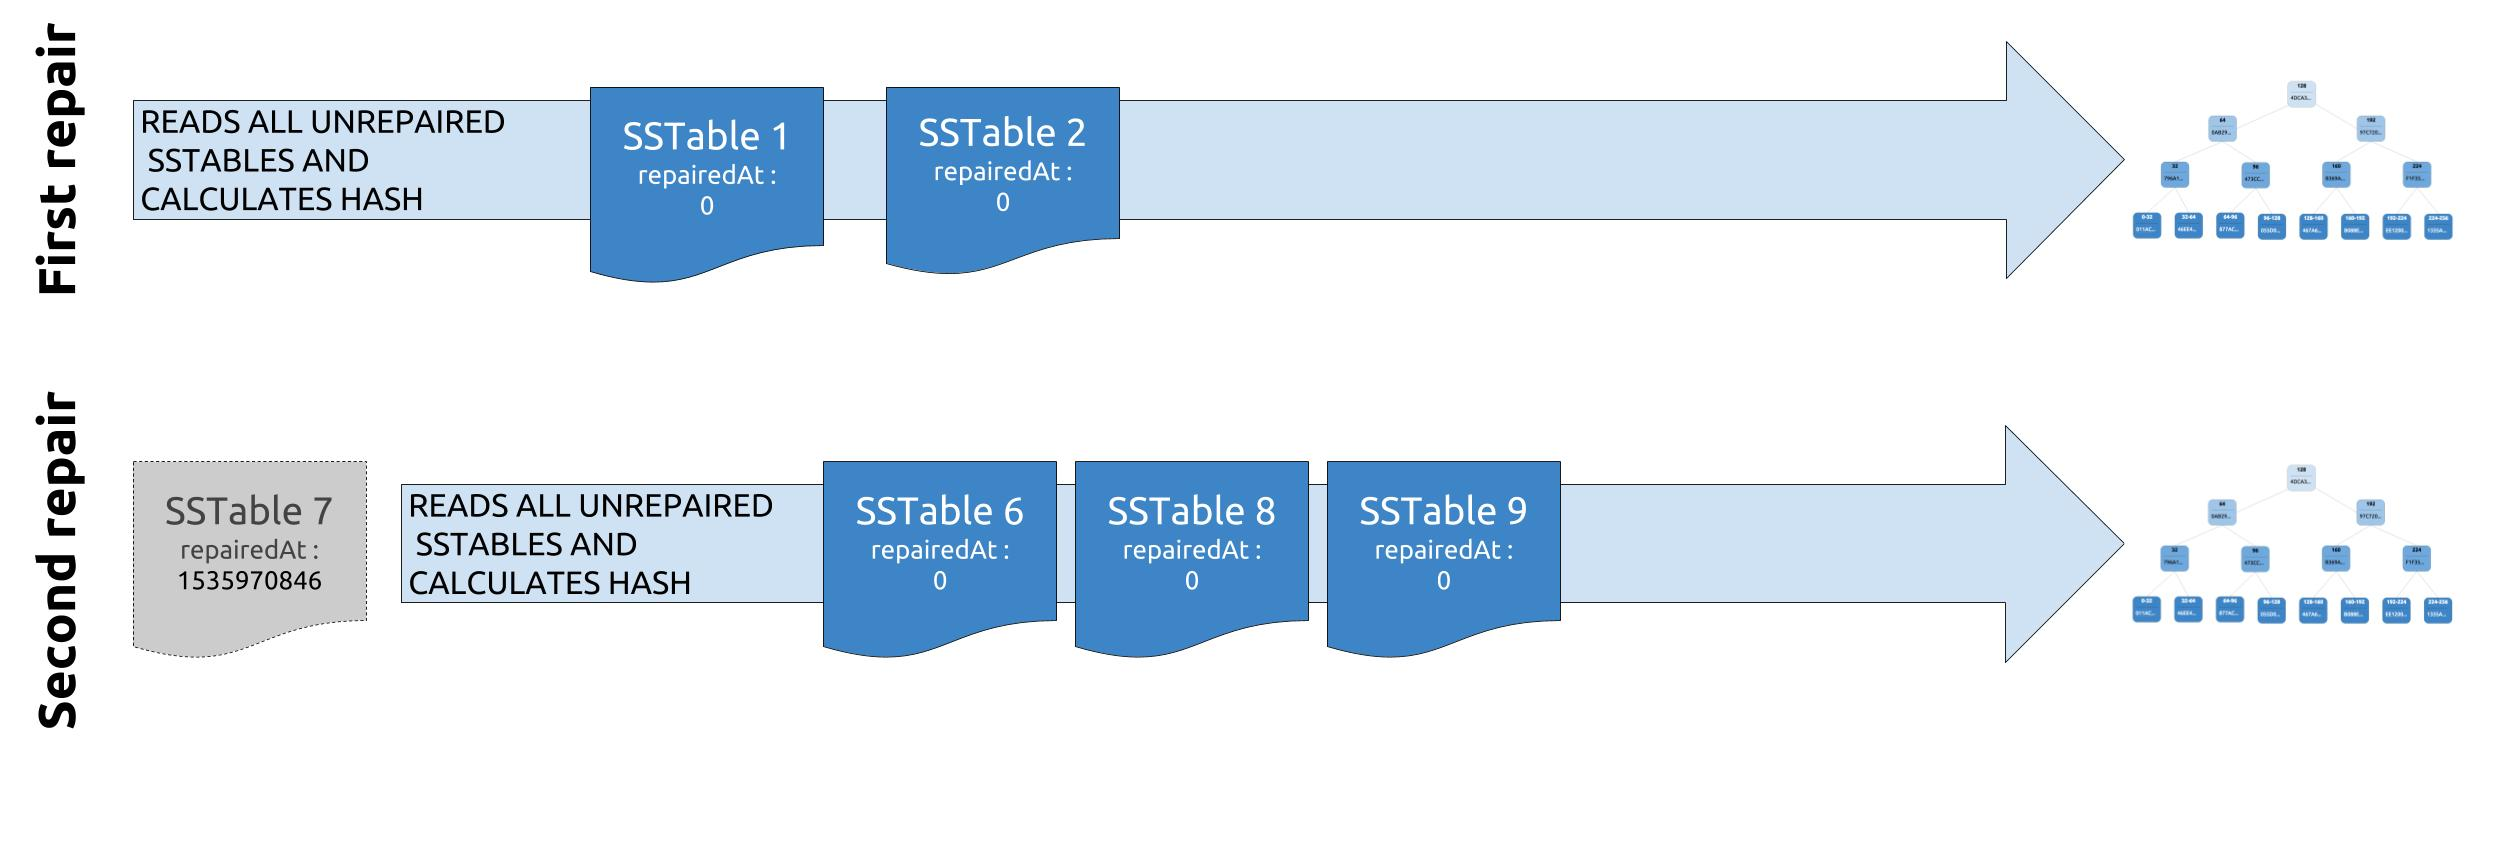 Already repaired data in SSTable 6 will be part of the Merkle tree computation